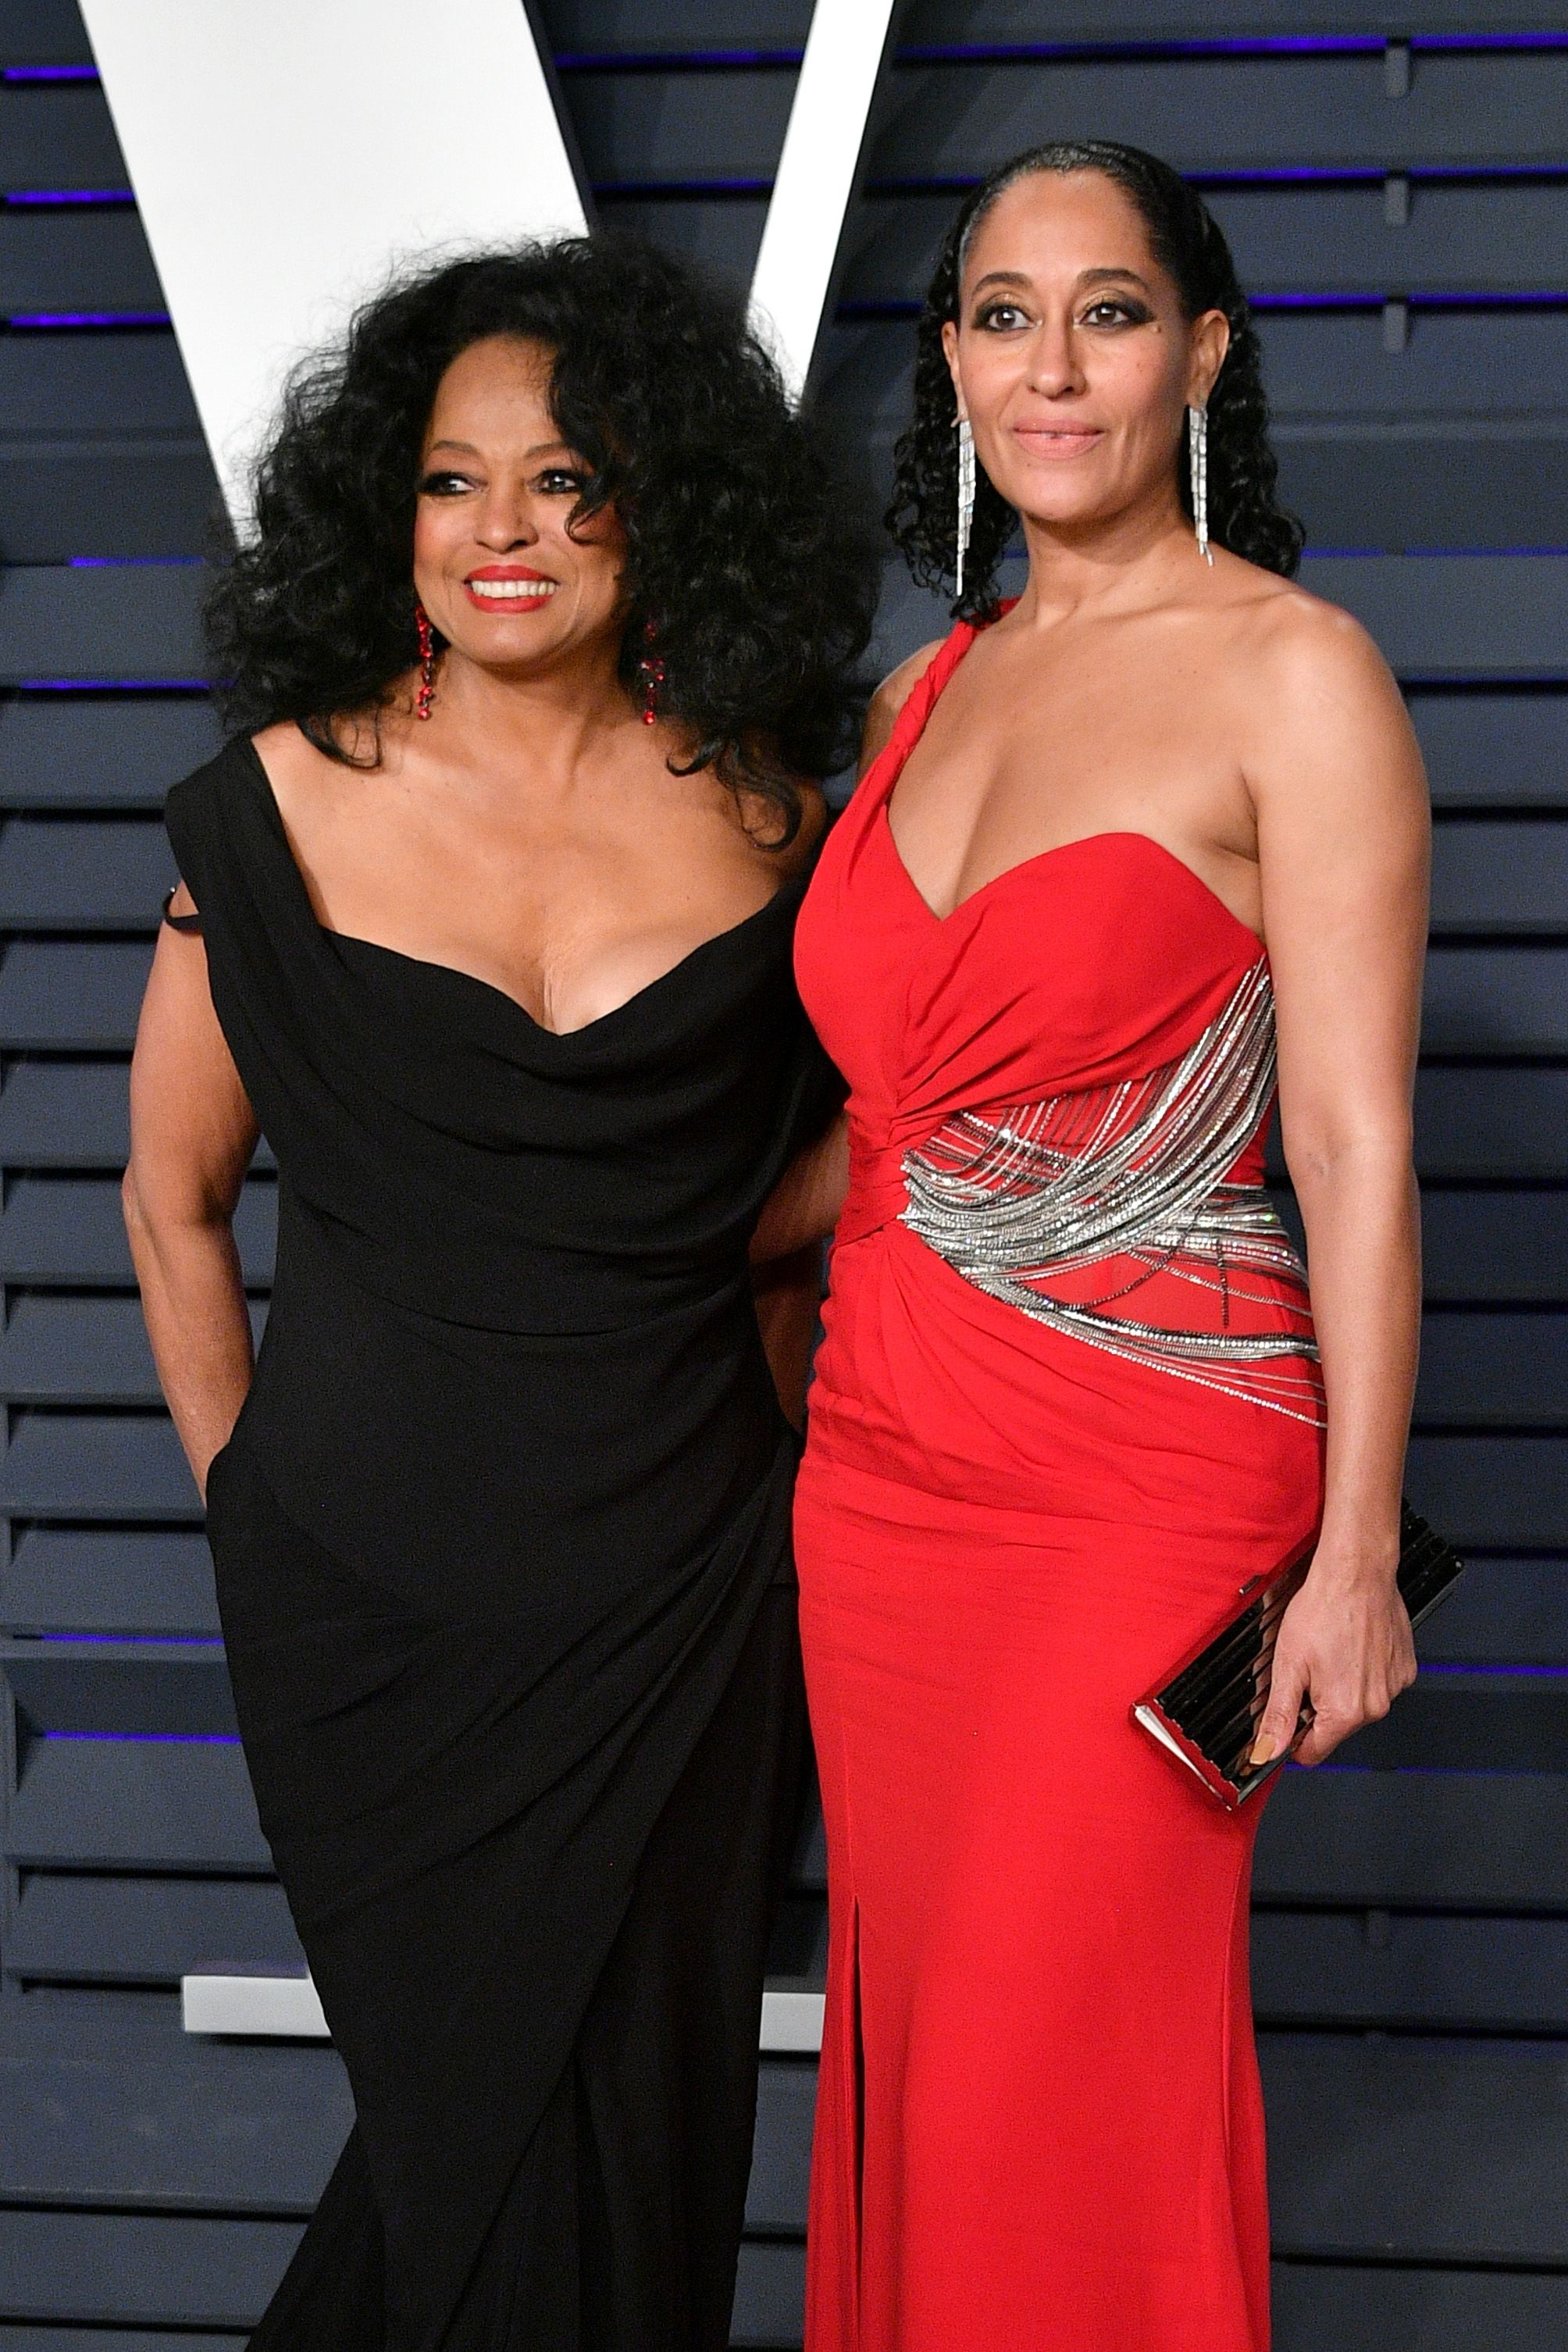 Diana Ross (L) and Tracee Ellis Ross at the 2019 Vanity Fair Oscar Party hosted by Radhika Jones at Wallis Annenberg Center for the Performing Arts on February 24, 2019 in Beverly Hills, California | Photo: Getty IMages